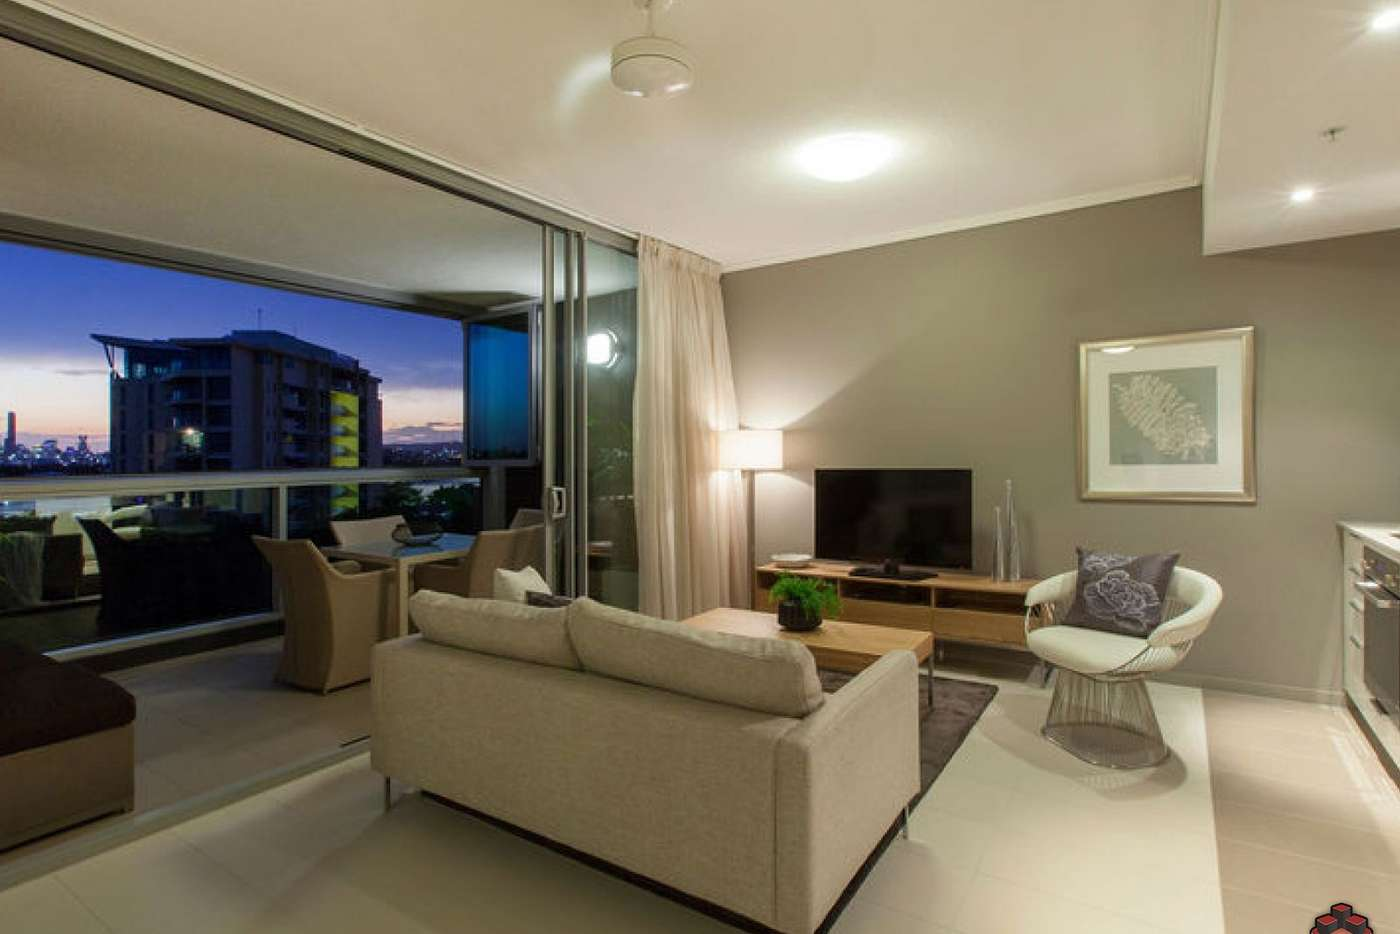 Main view of Homely apartment listing, ID:3916102/ 2 Harbour Road, Hamilton QLD 4007